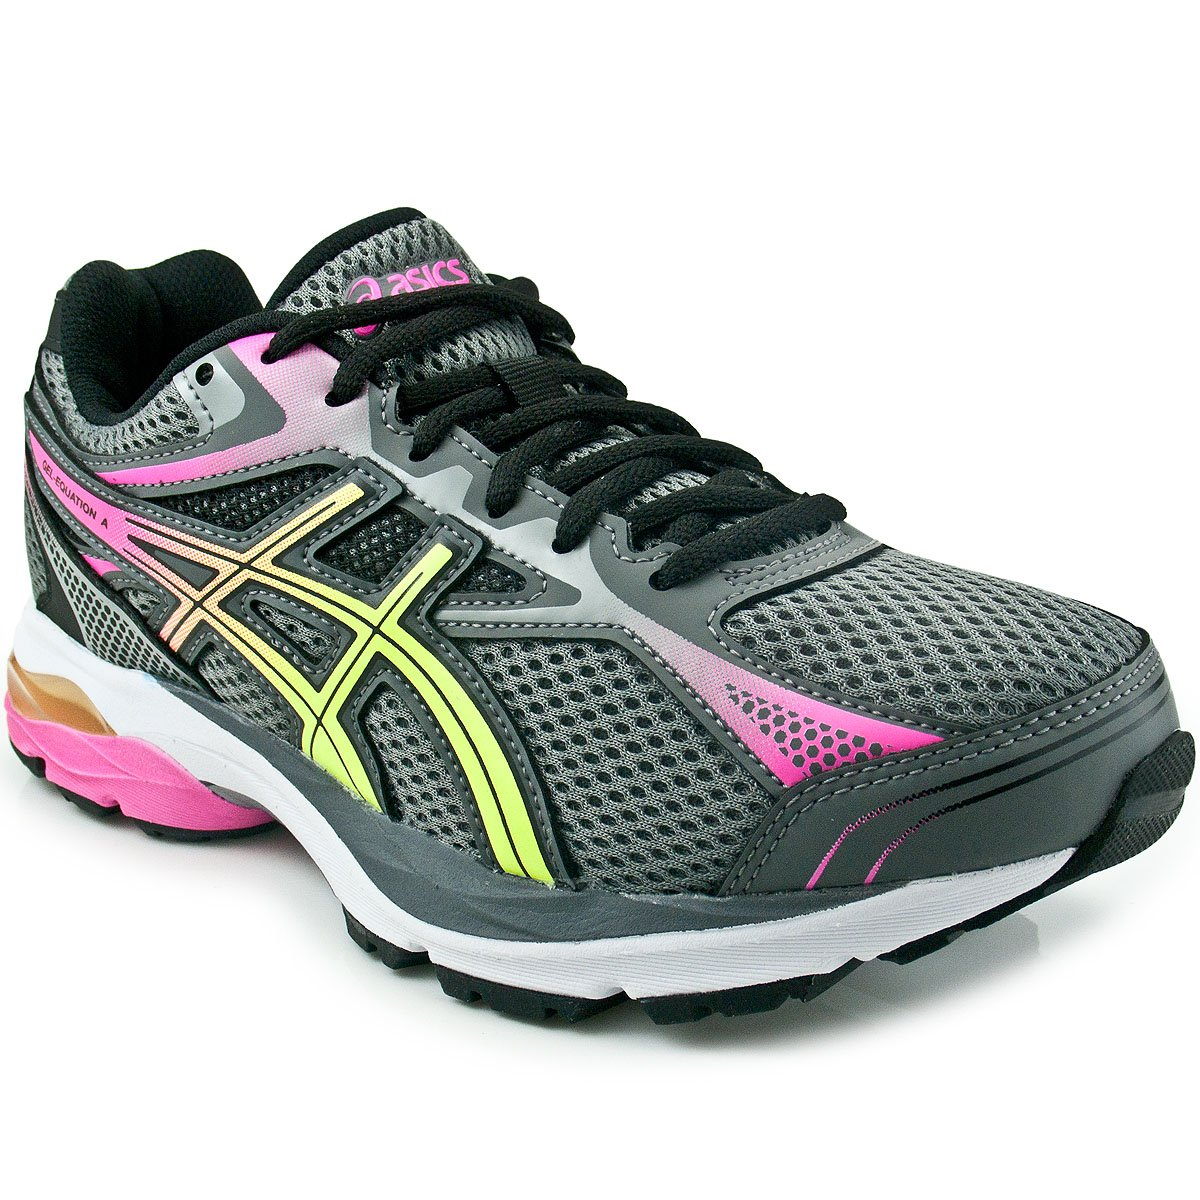 268dbdaa090 Tênis Asics Gel Equation 9 A Feminino